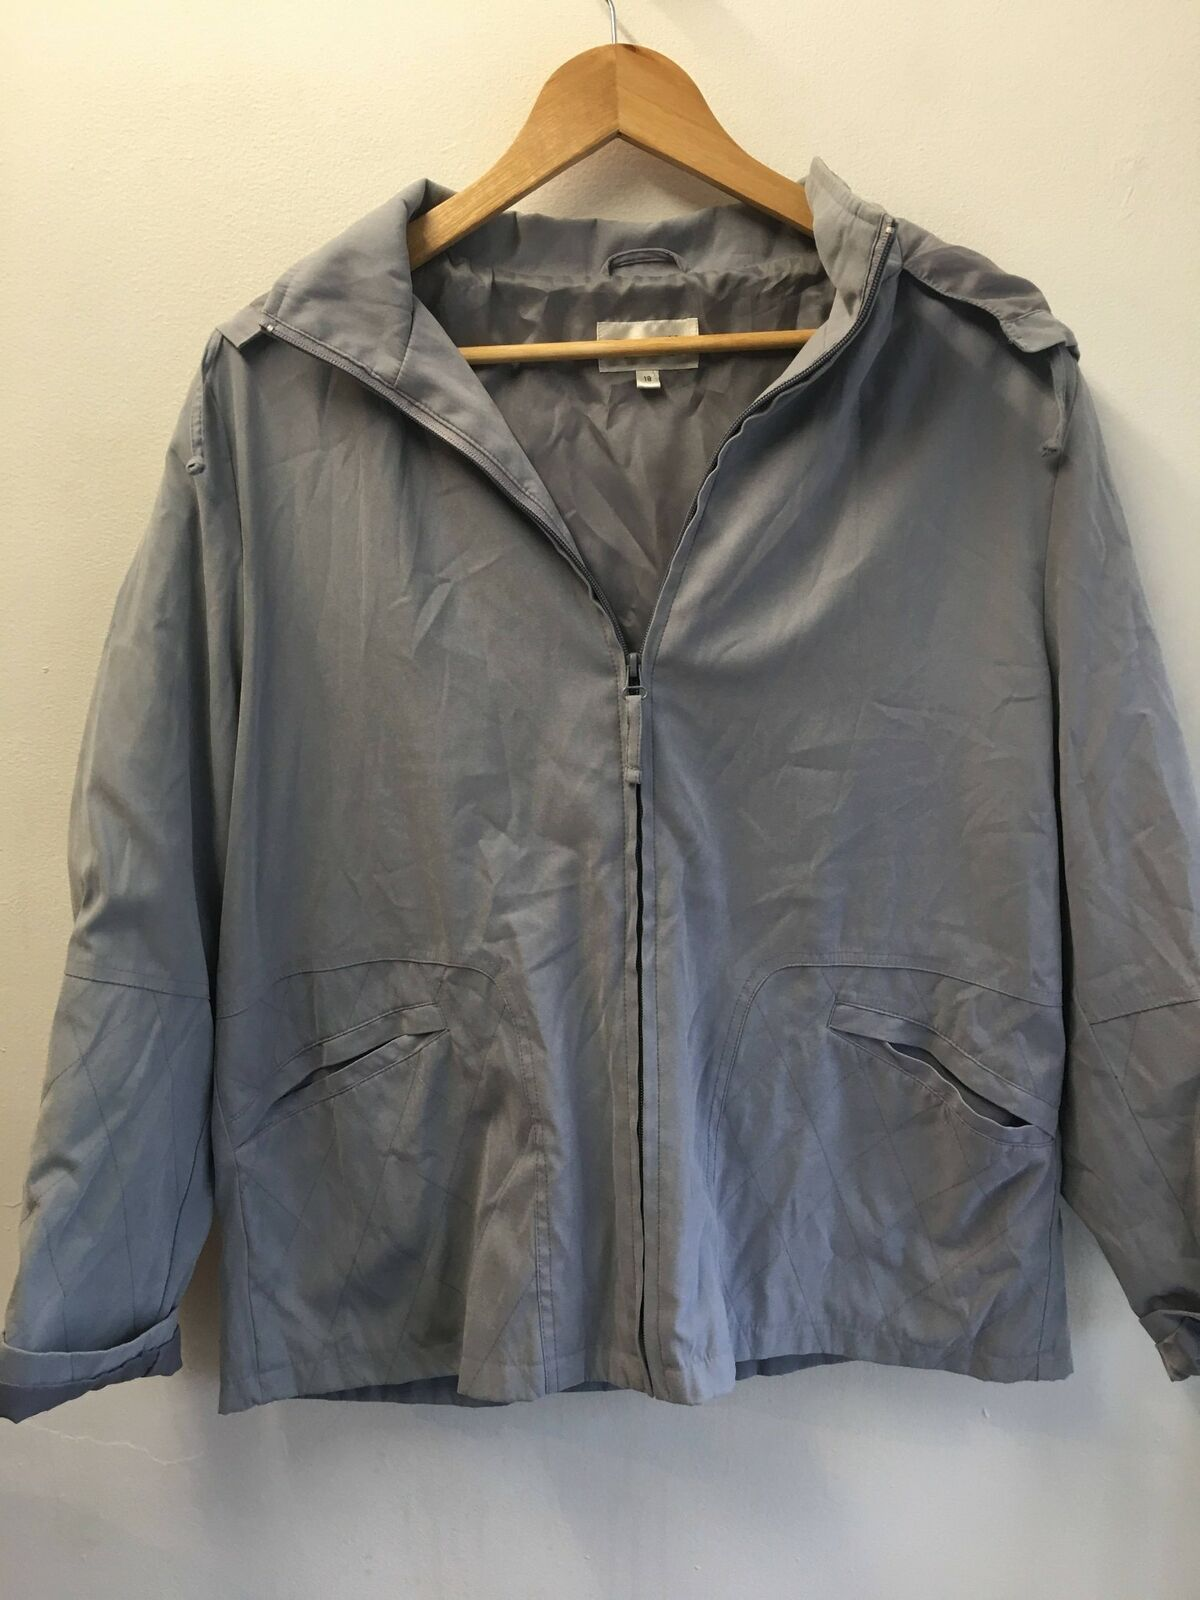 Womens Hooded Warm Grey Classic Jacket by ROSSETTI - Size 18 - Padded Shoulders